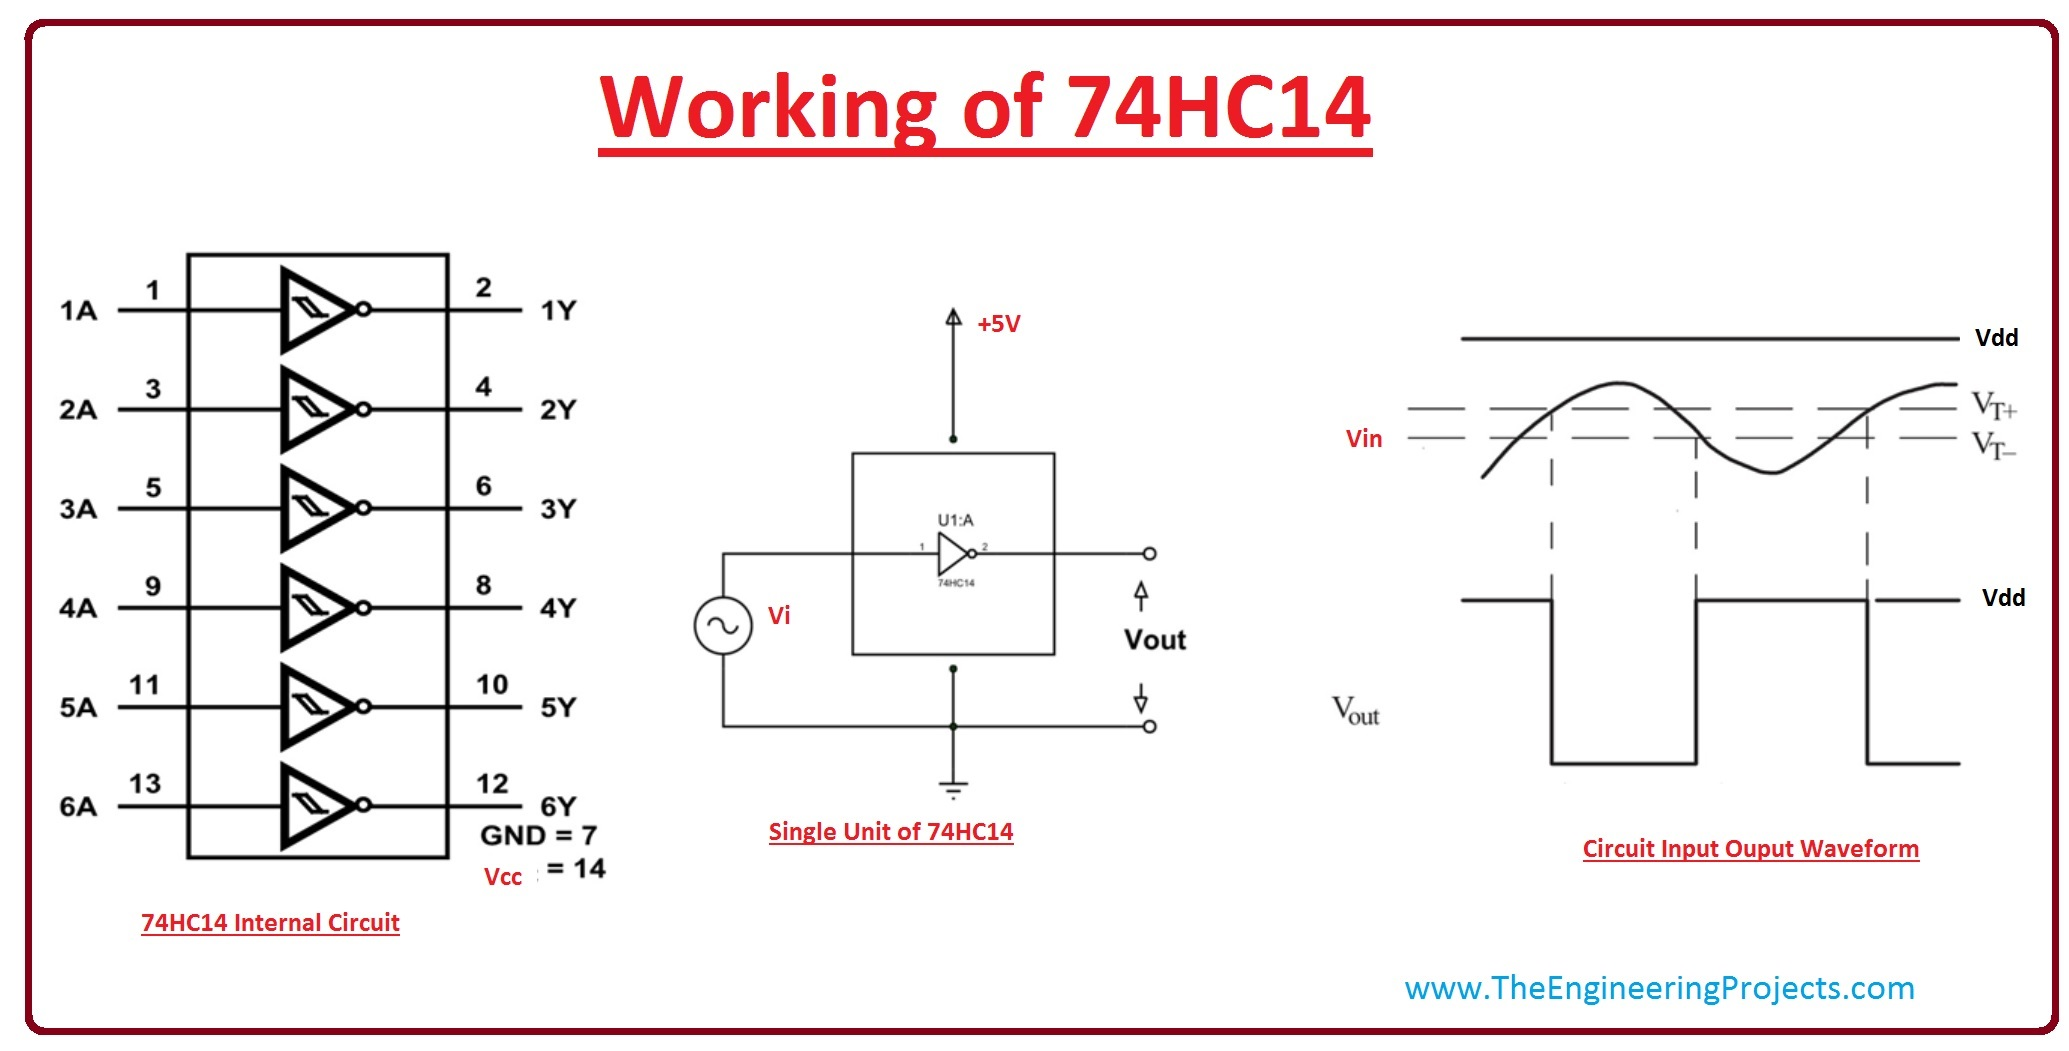 introduction to 74HC14, 74HC14 pinout, 74HC14 working, 74HC14 features, 74HC14 switching time, 74HC14 applications